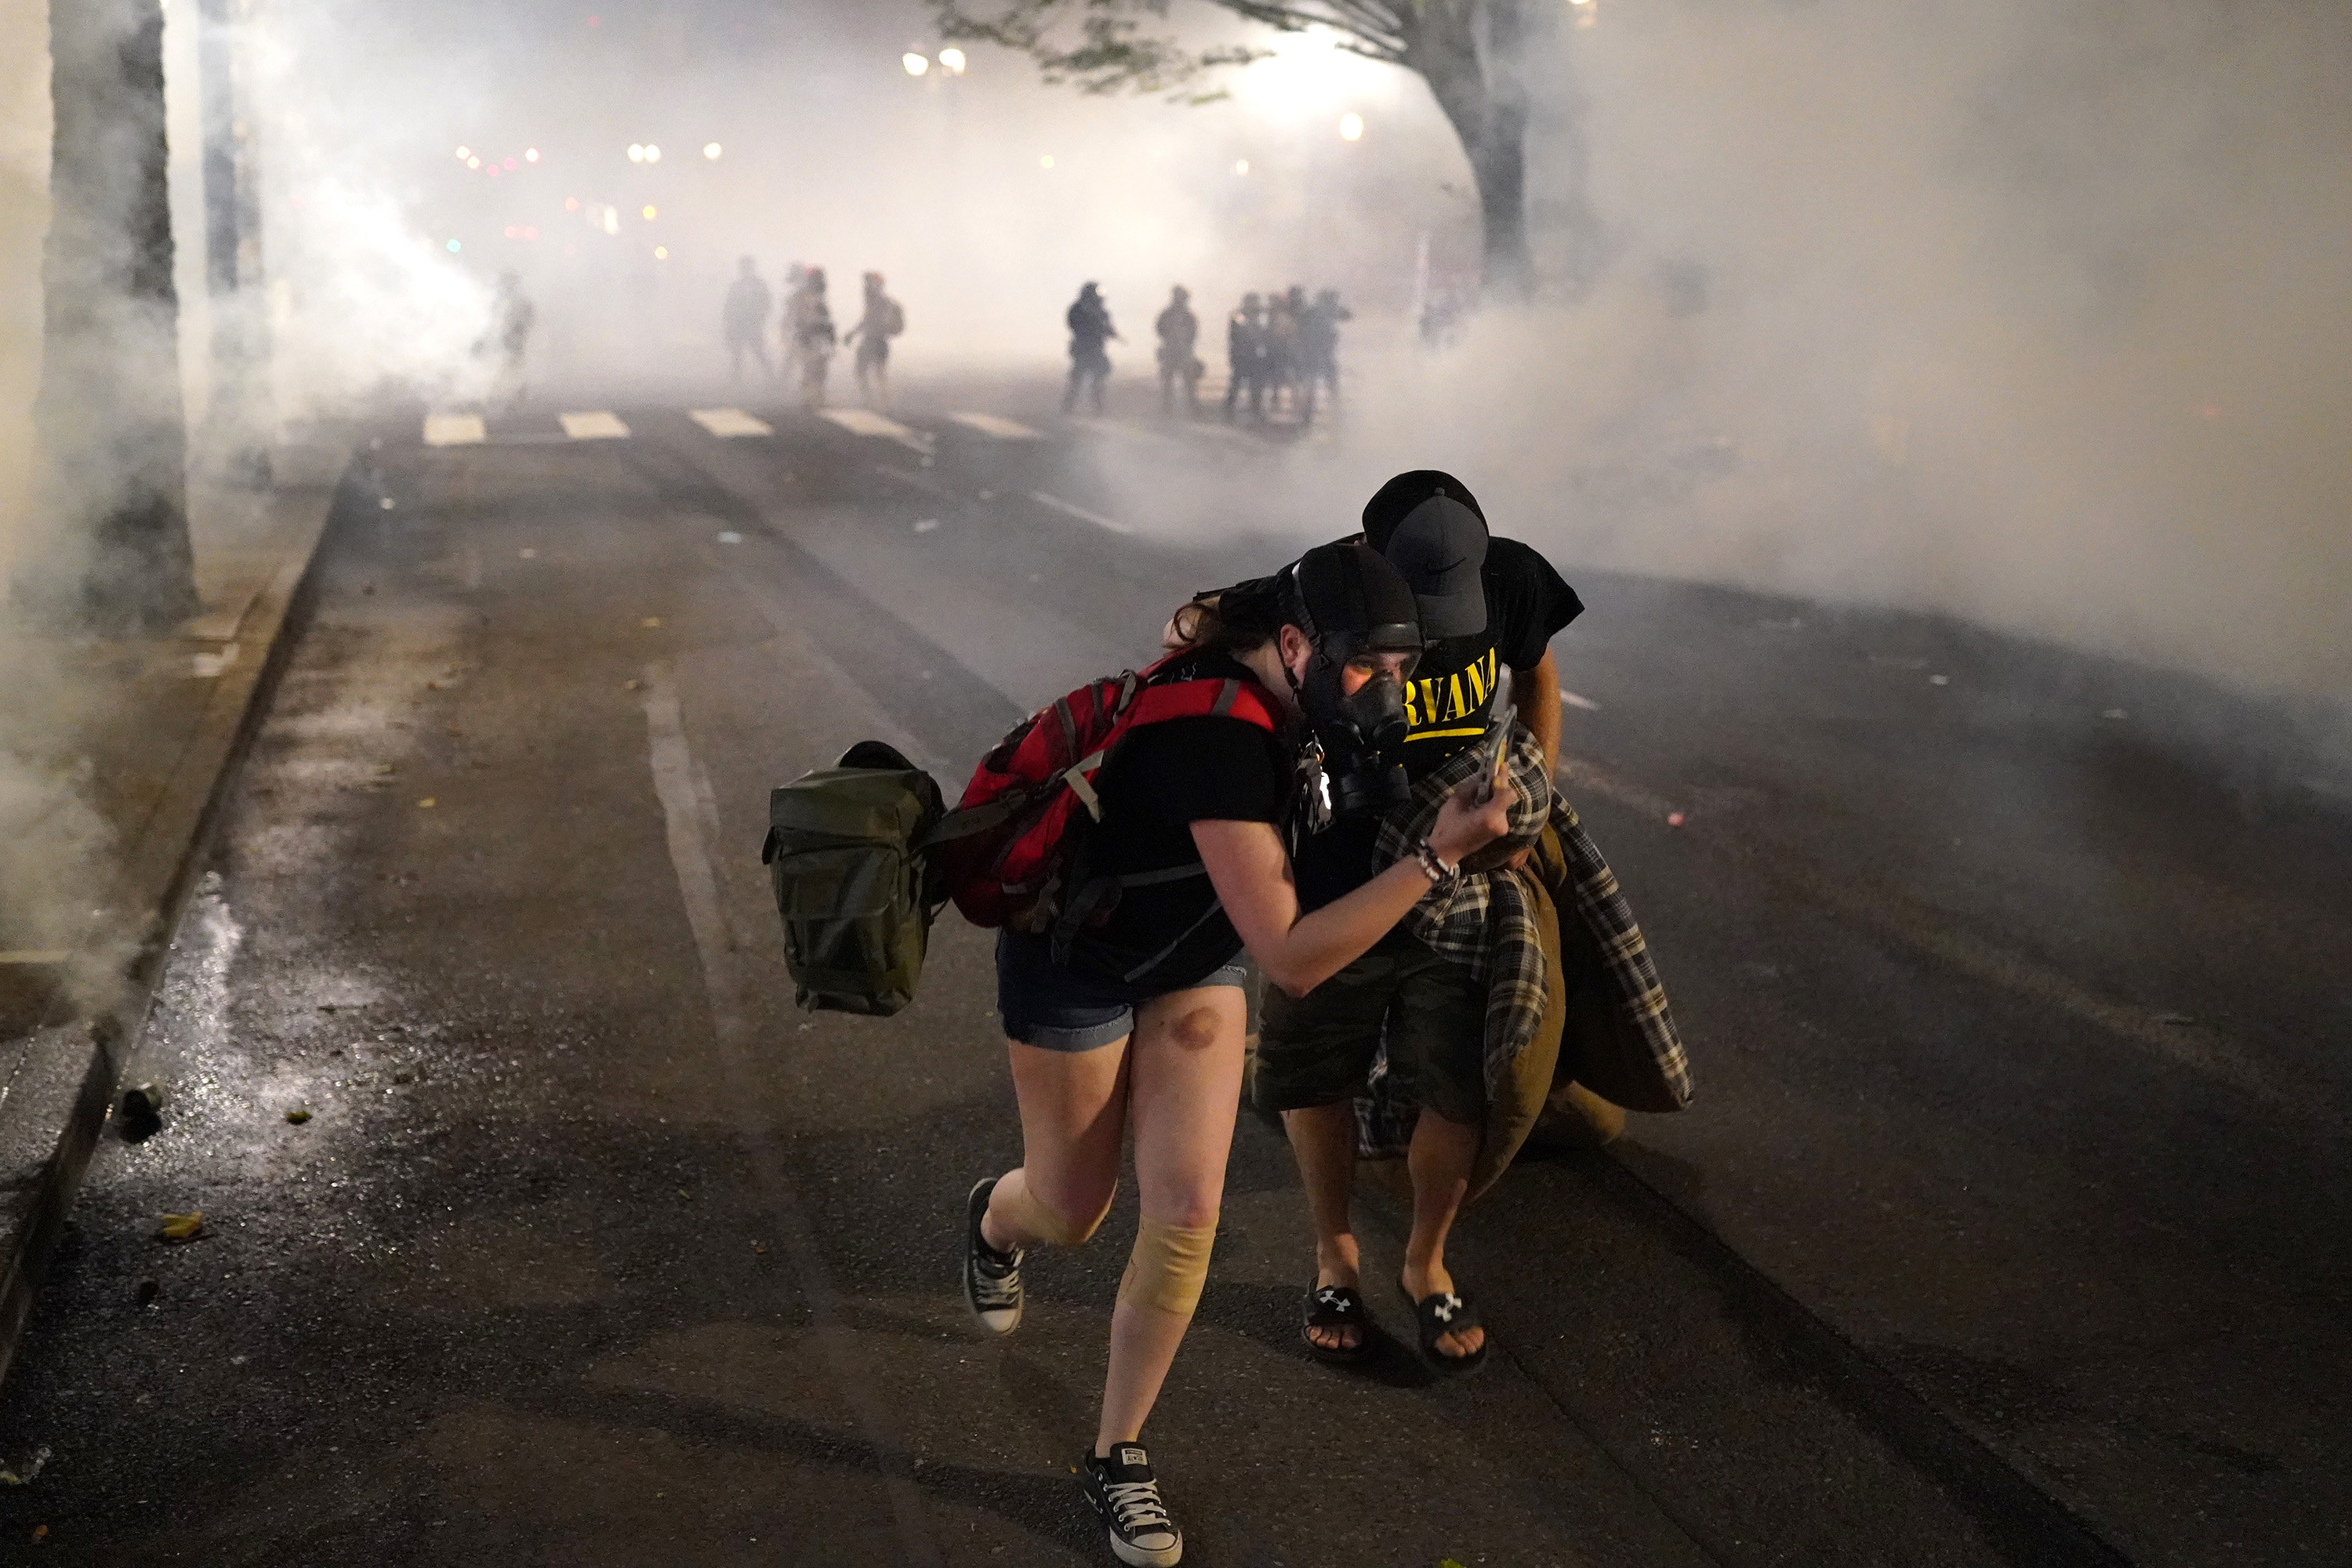 Two protesters flee through tear gas after federal officers dispersed a crowd using tear gas in Portland